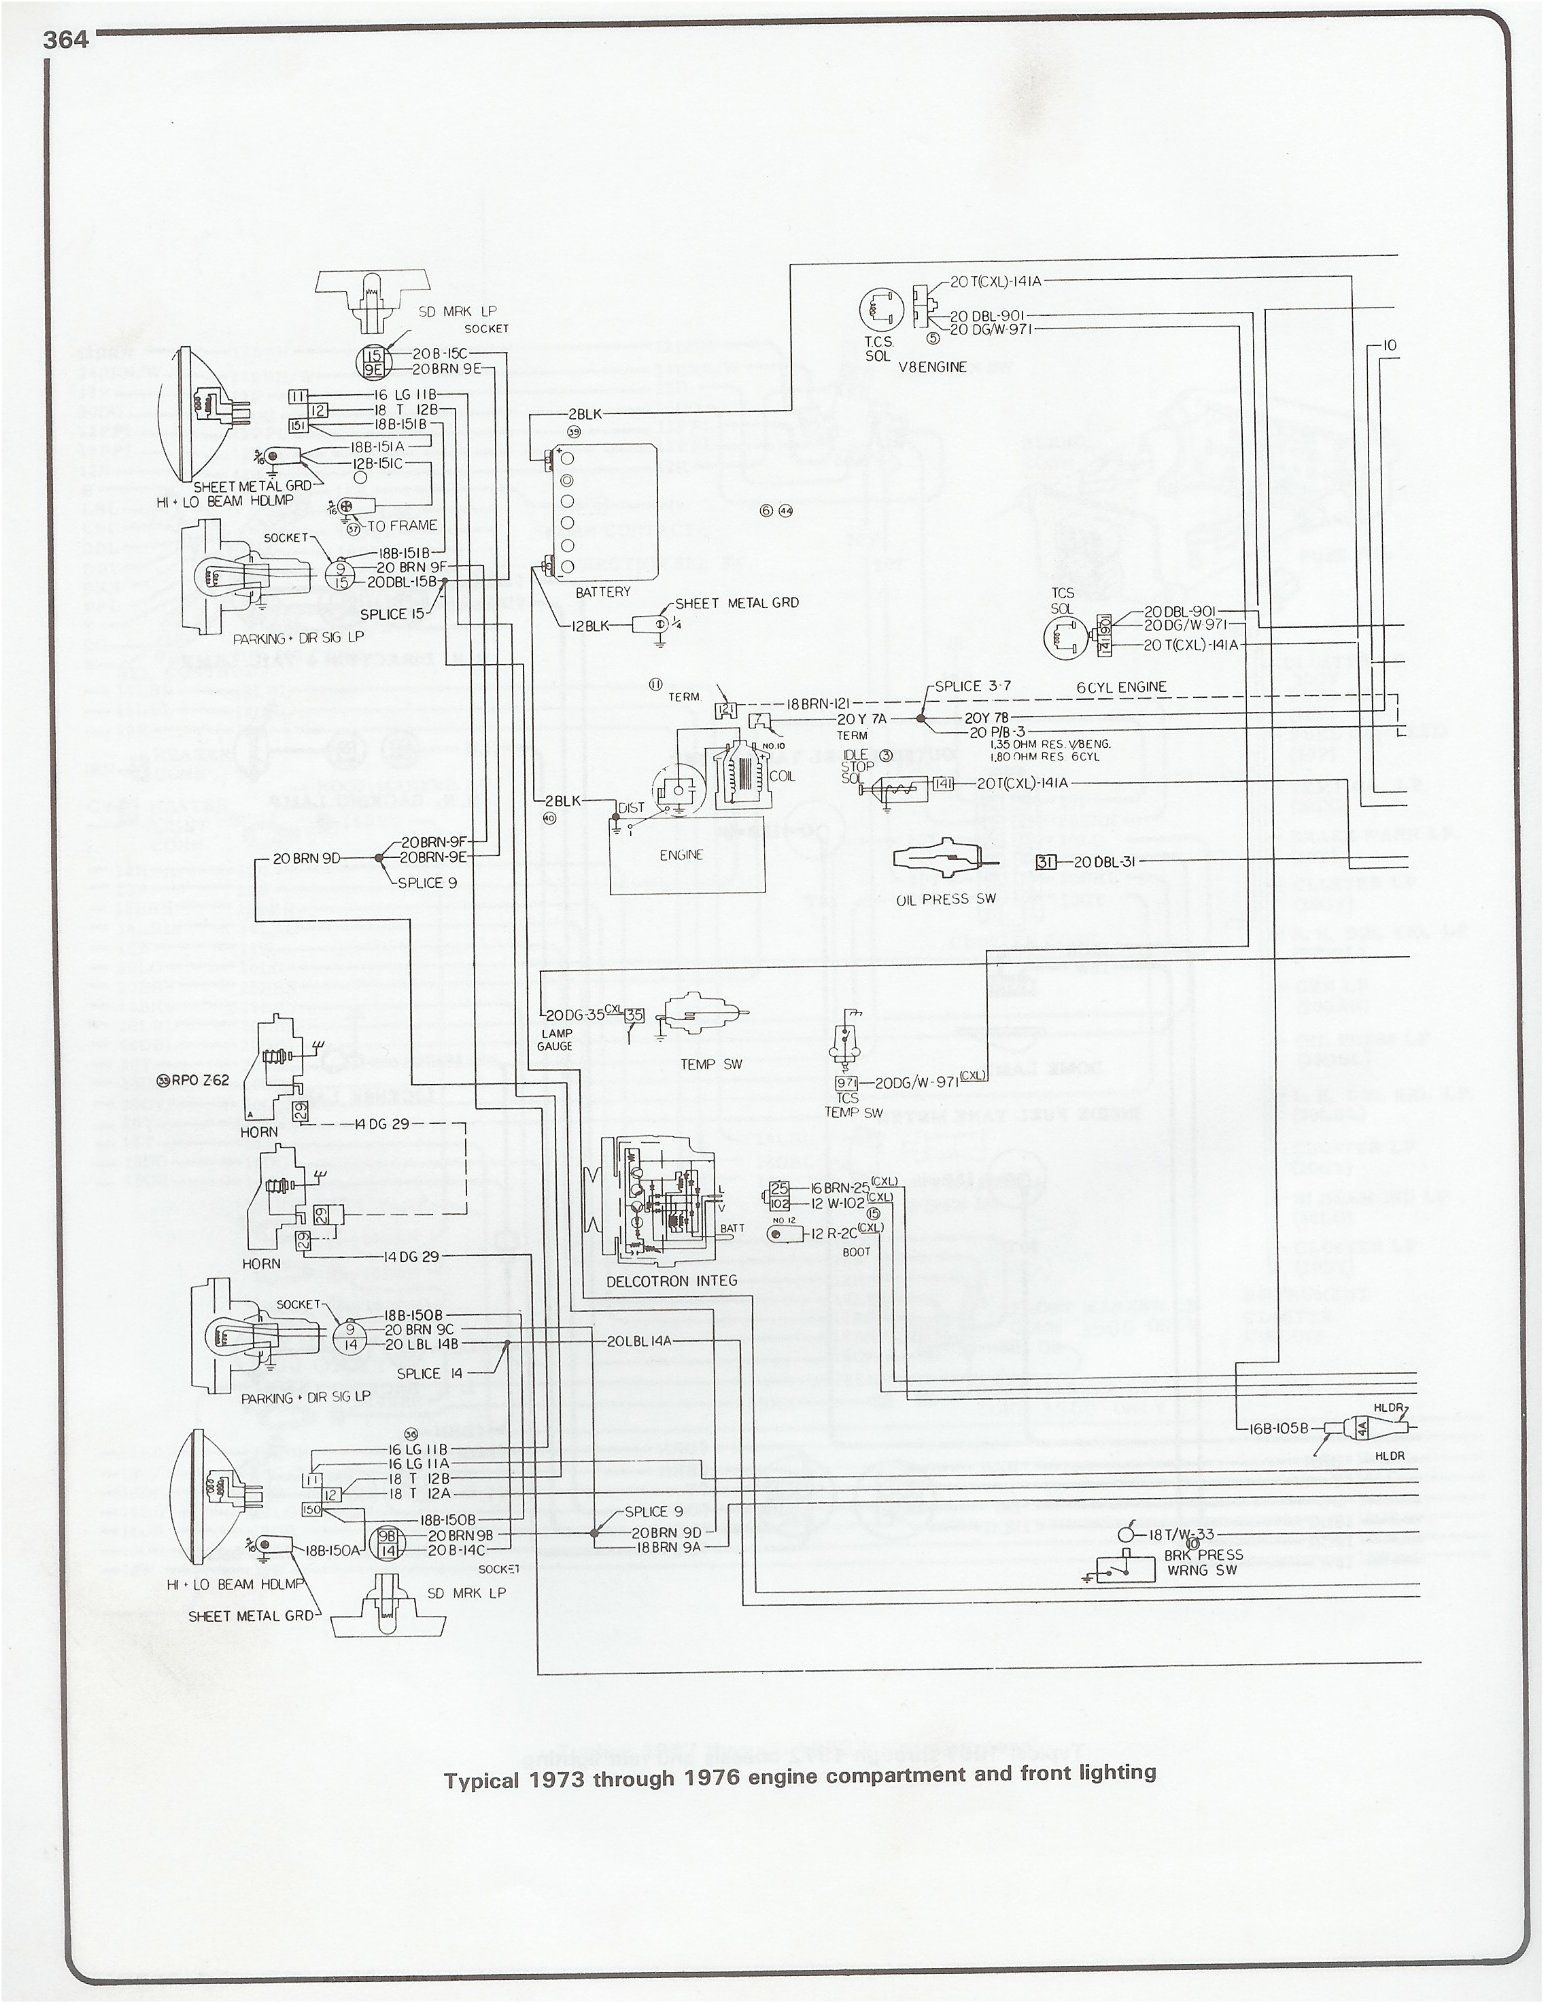 medium resolution of 1977 c10 wiring diagram wiring diagram autovehicle 1977 chevy c10 alternator wiring